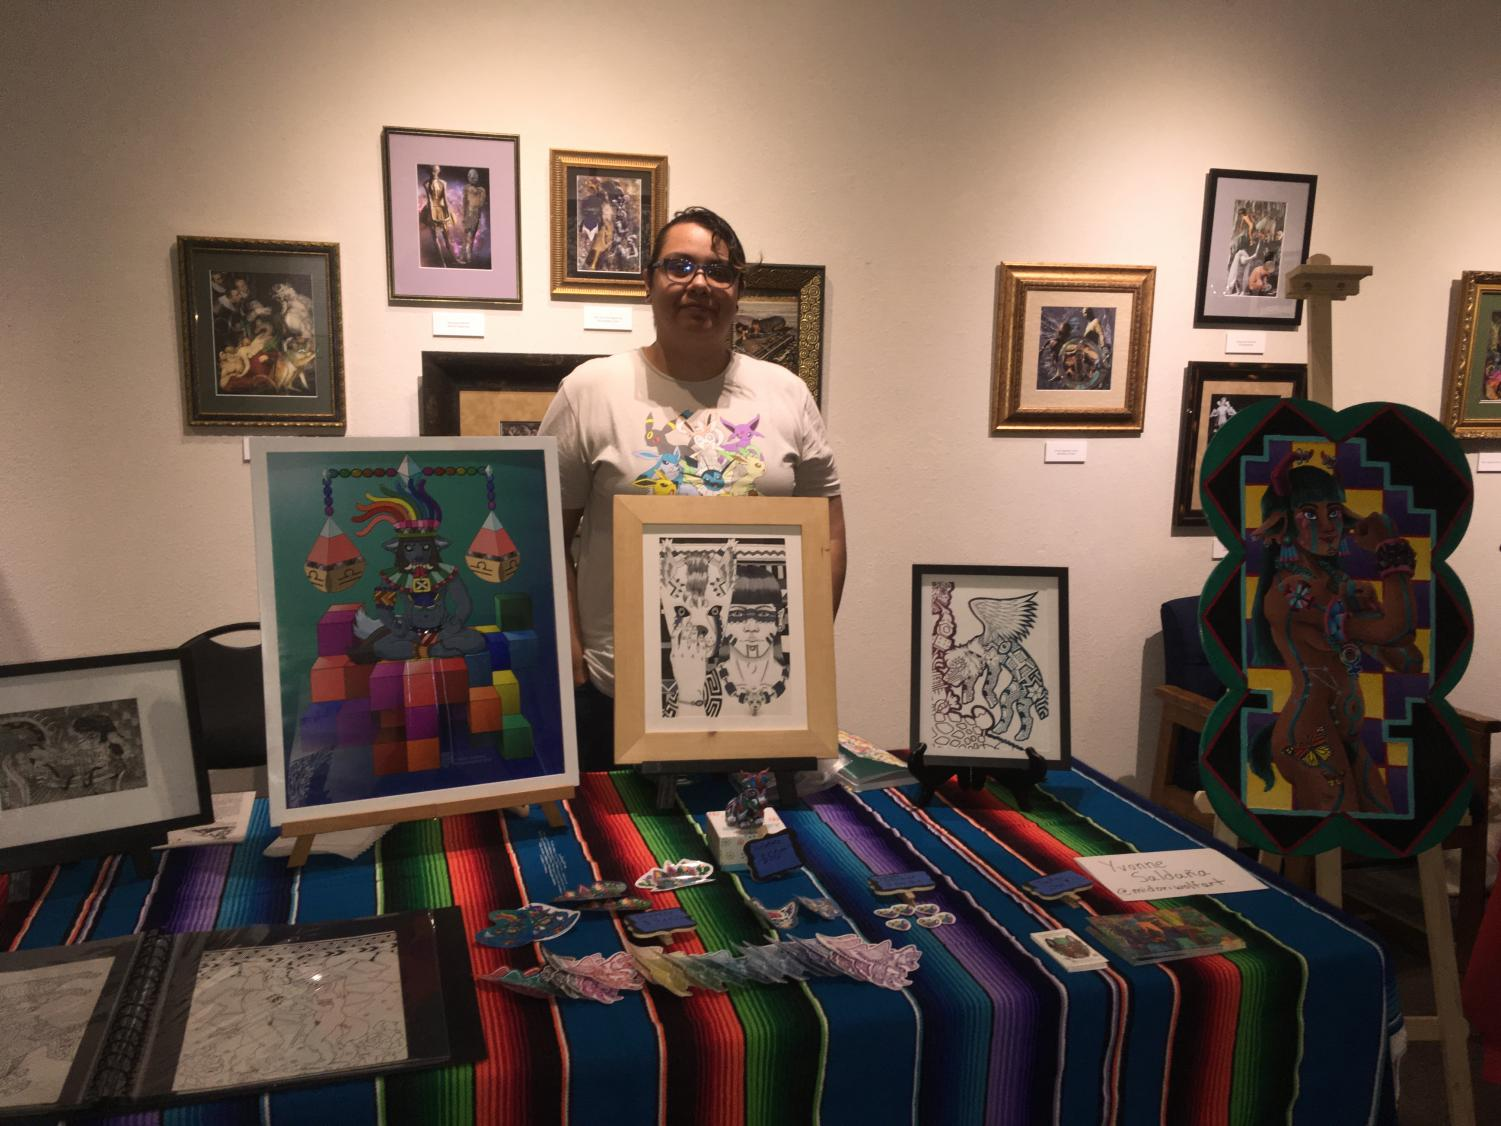 Yvonne Saldana, 2018 graduate of Sac State and art major, displays her work at the University Library Gallery on Wednesday. The Task Force for the Center on Race, Immigration, and Social Justice put this event together bring light to the topic of immigration.